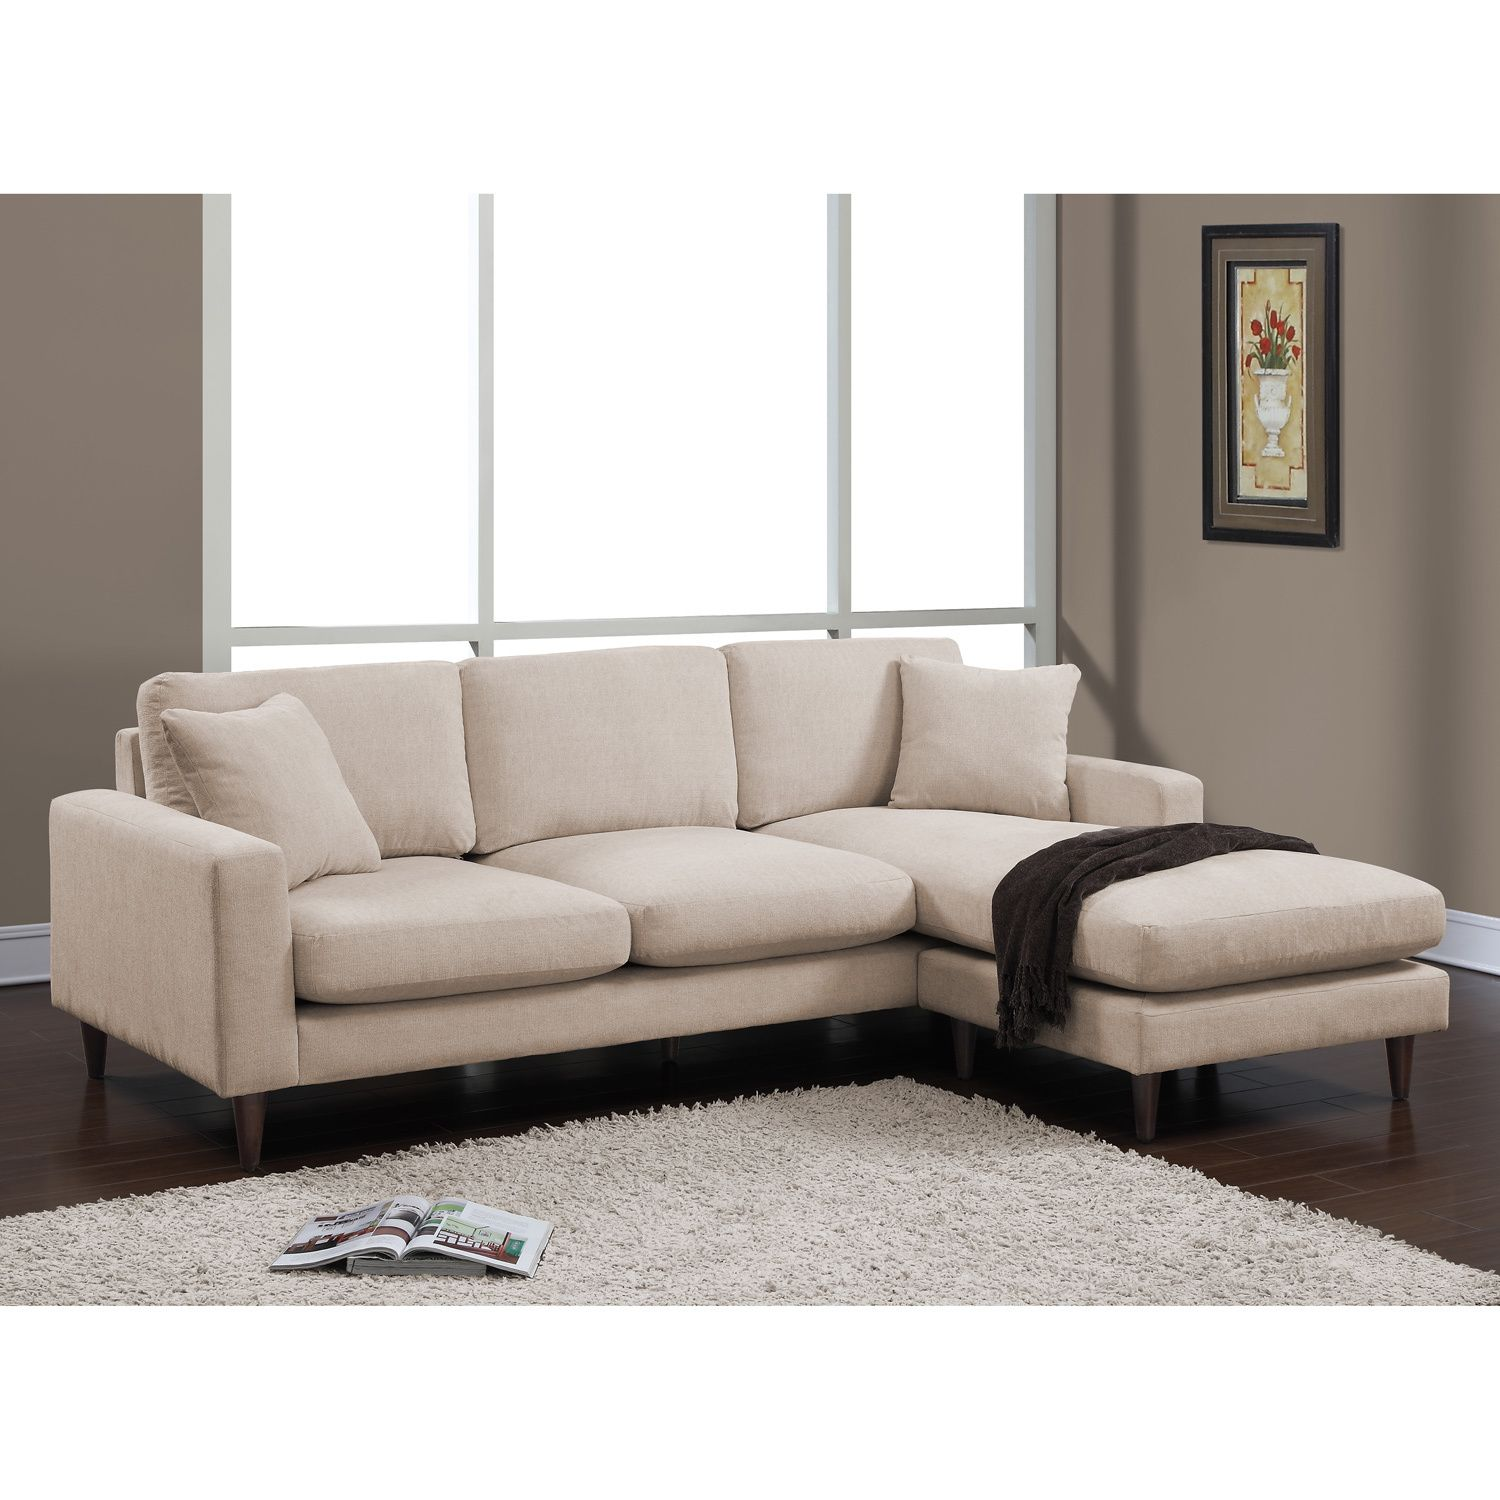 Lounge in total fort with the Shaffer two piece sectional made